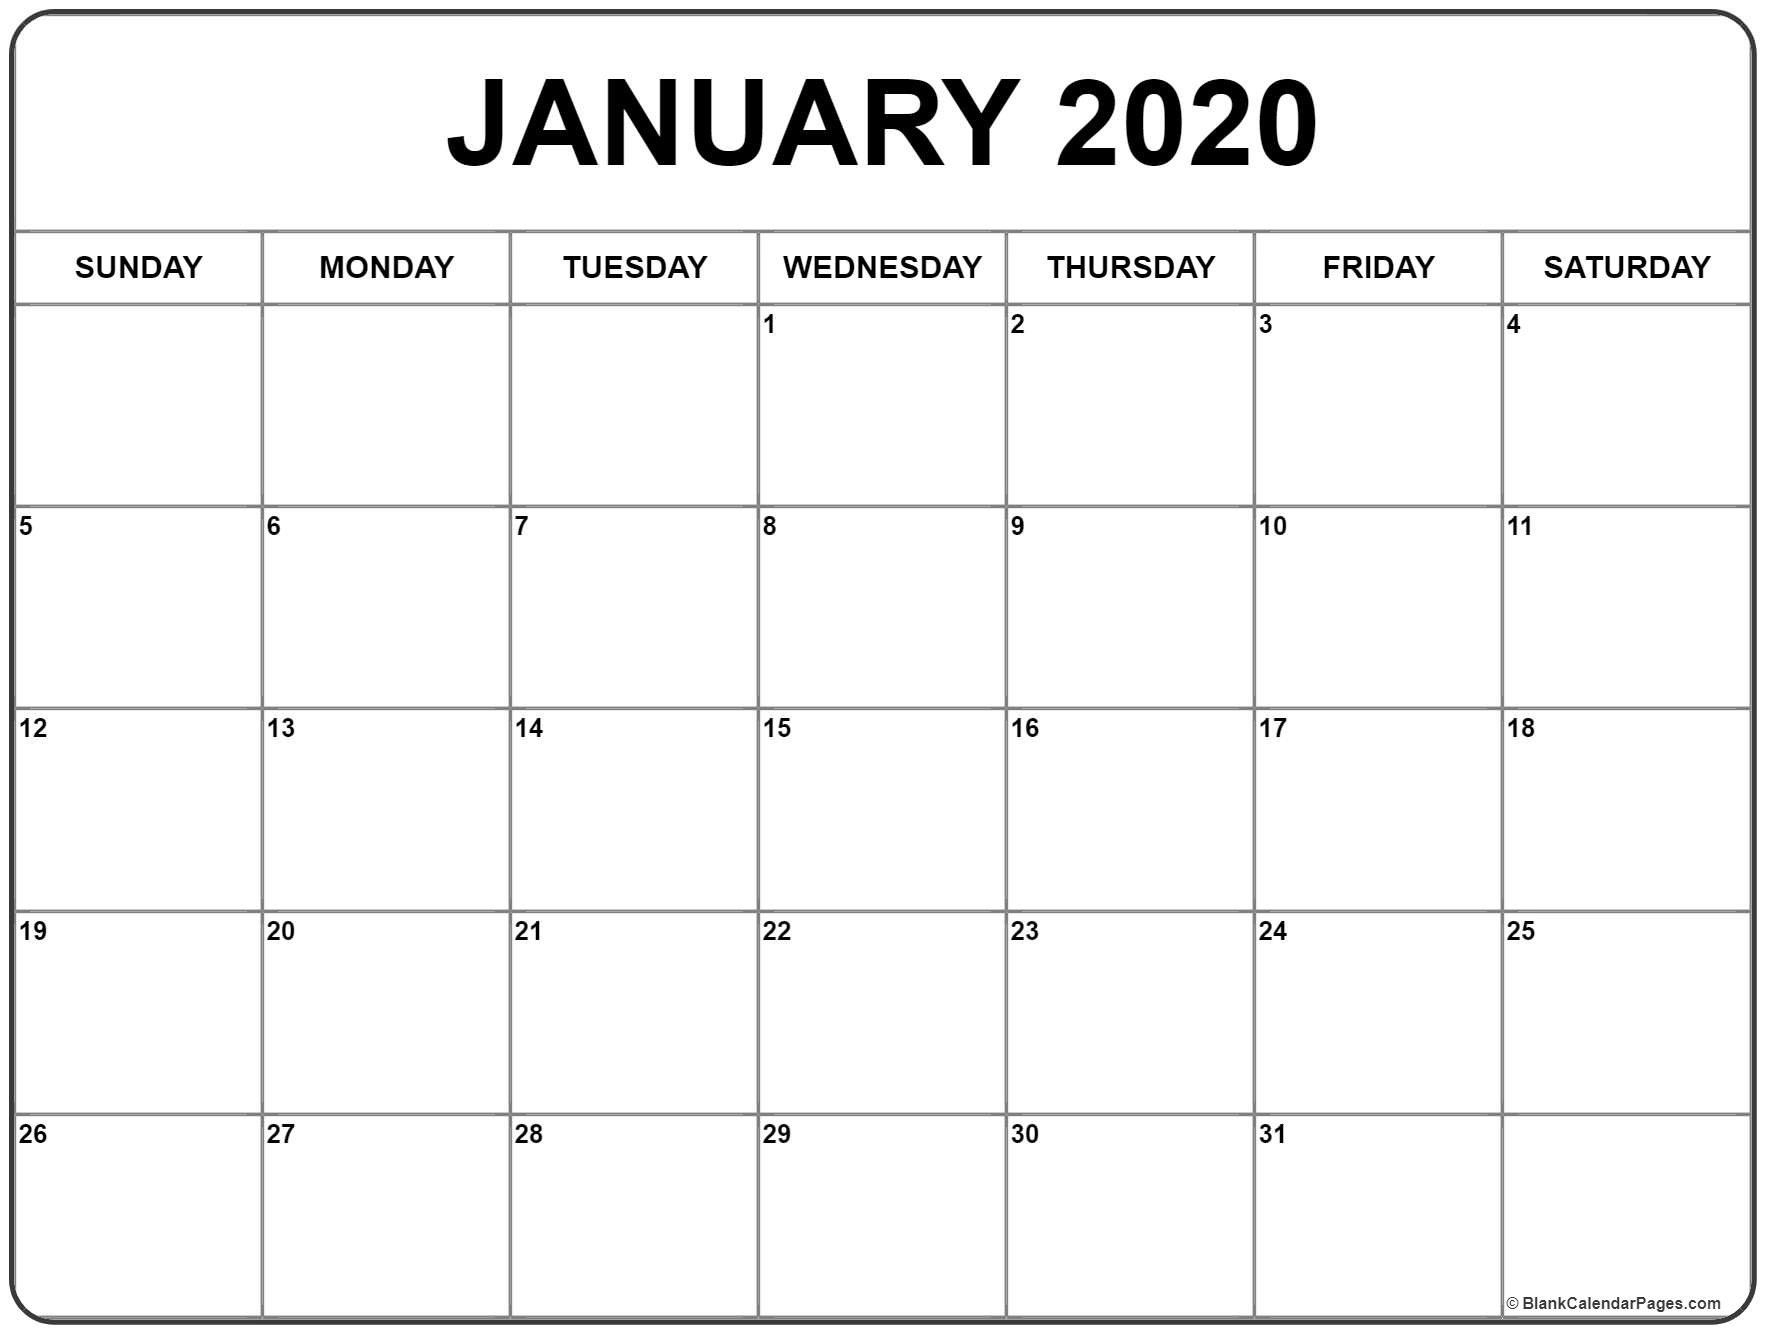 January 2020 Calendar 56 Templates Of 2020 Printable January intended for 2020 Monthly Calendar Monday Start Printable